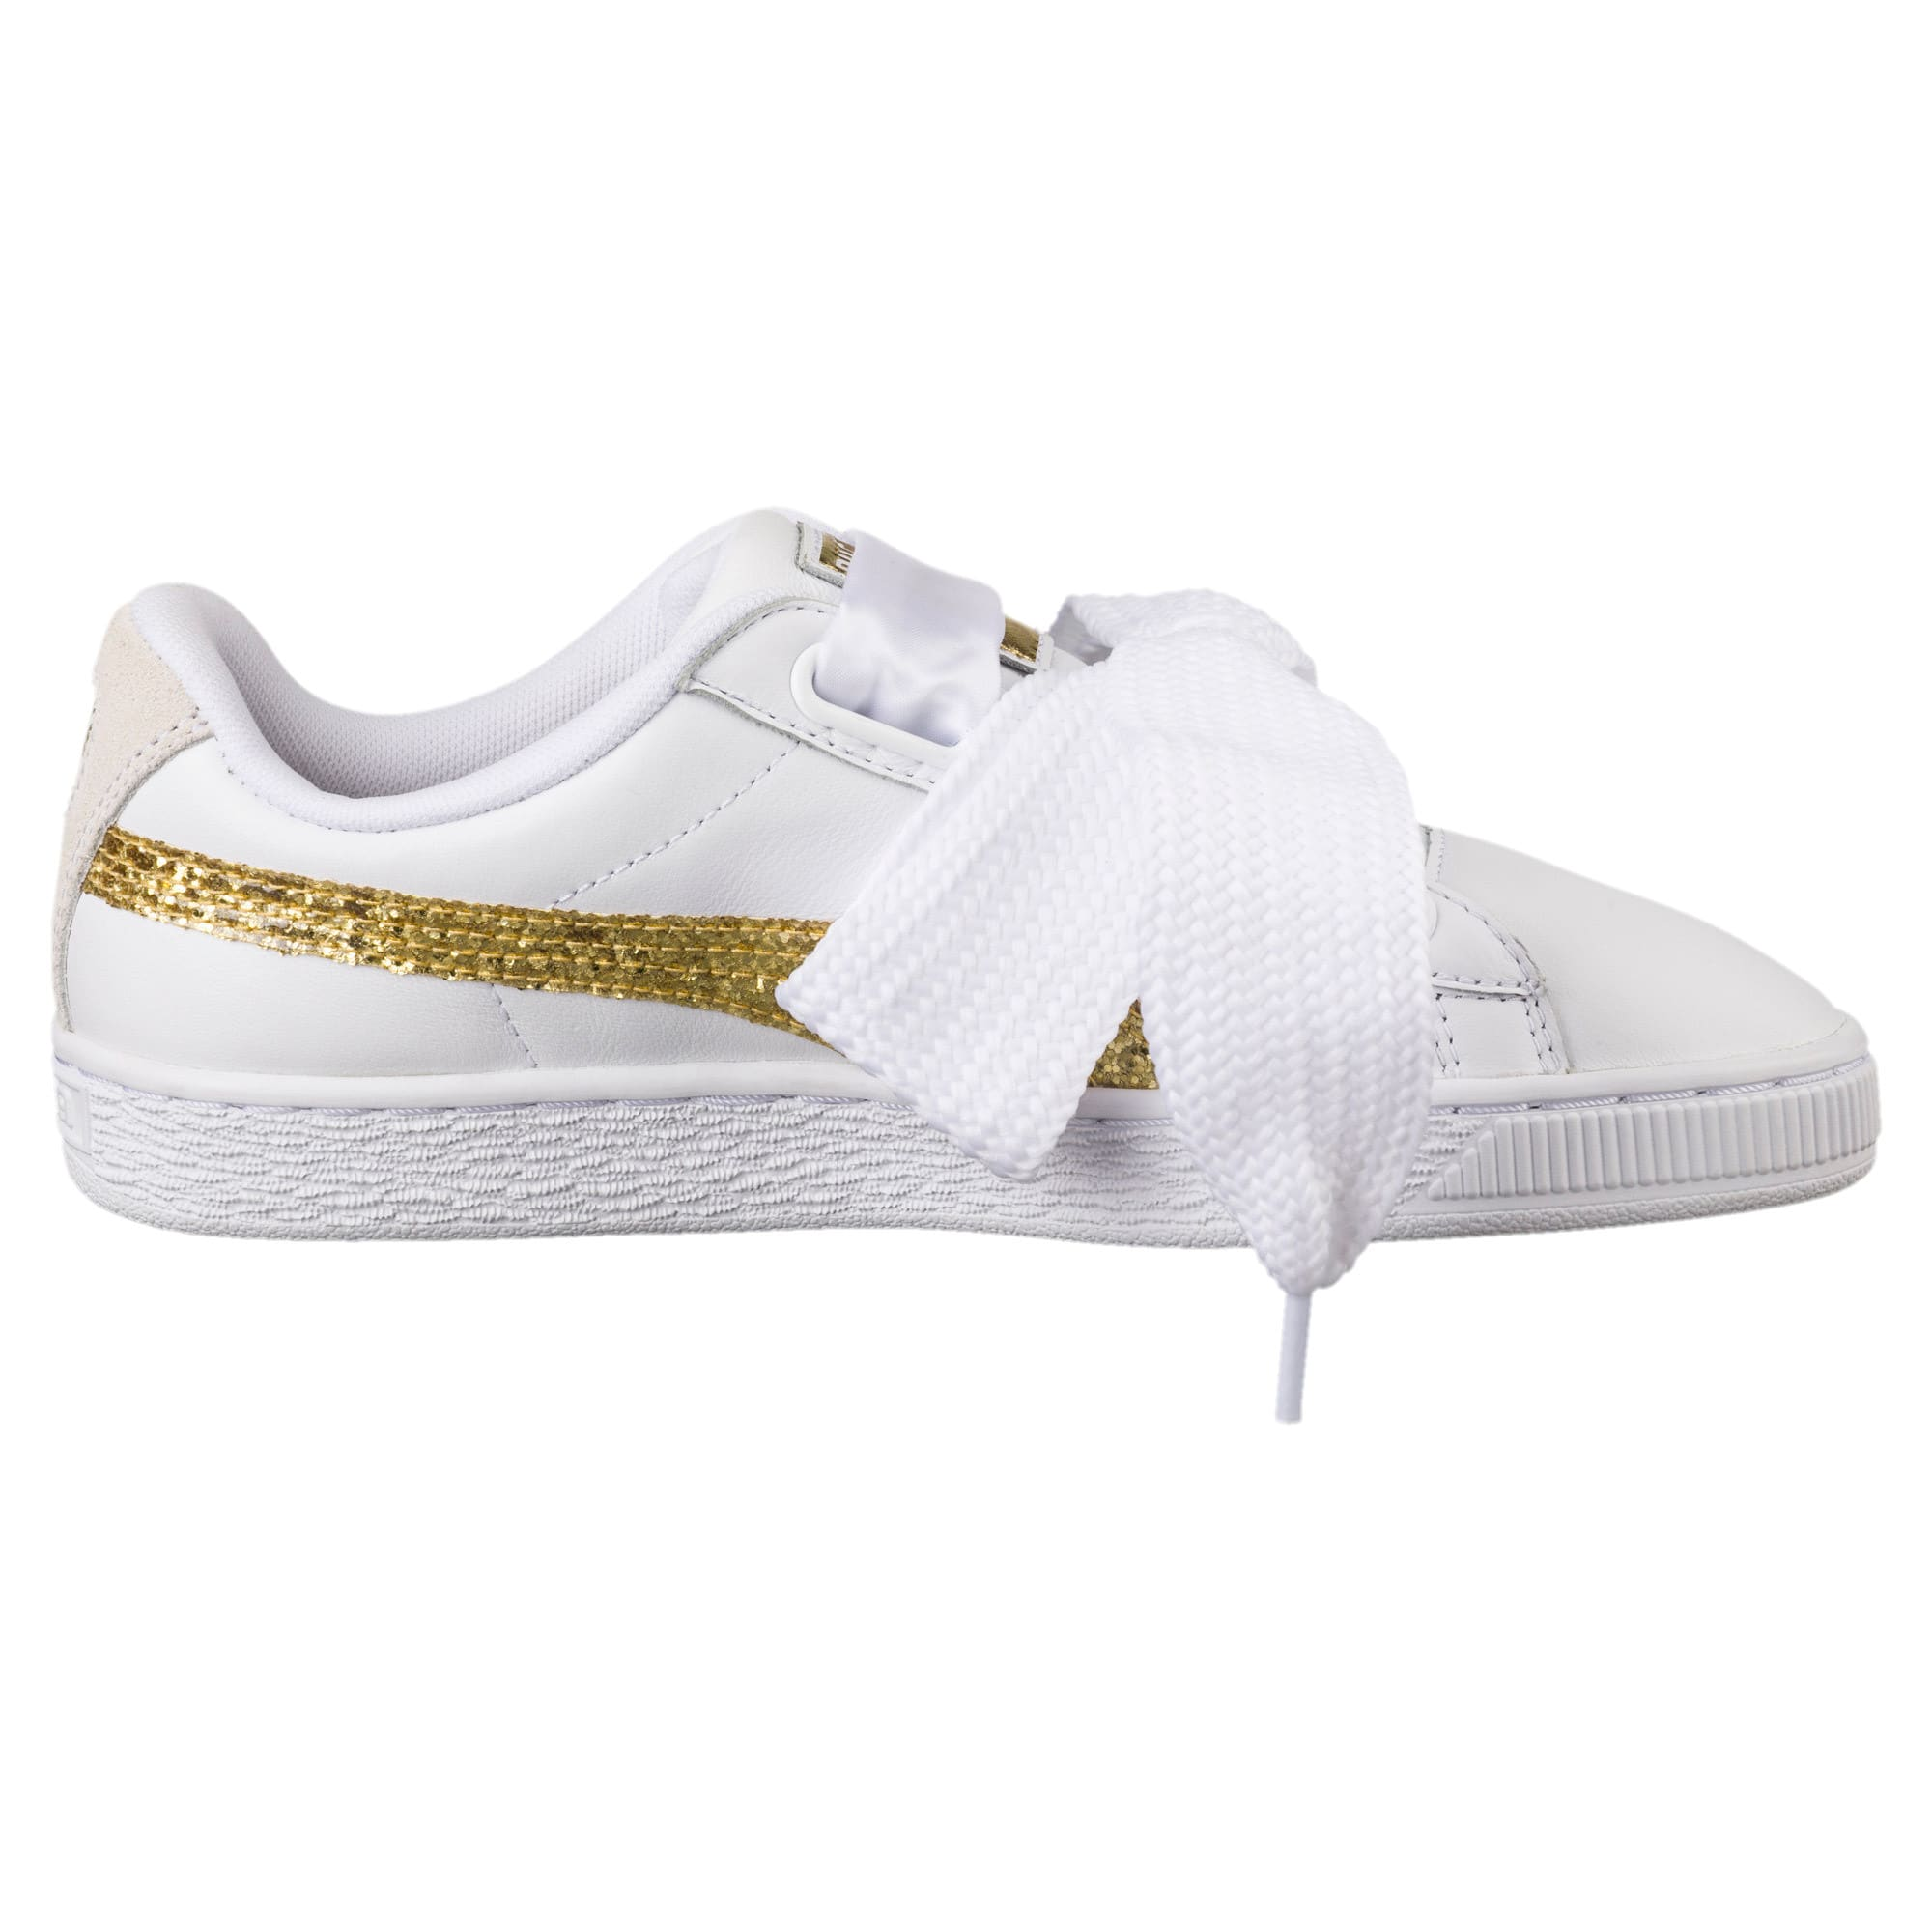 Thumbnail 3 of Basket Heart Glitter Women's Trainers, Puma White-Gold, medium-IND